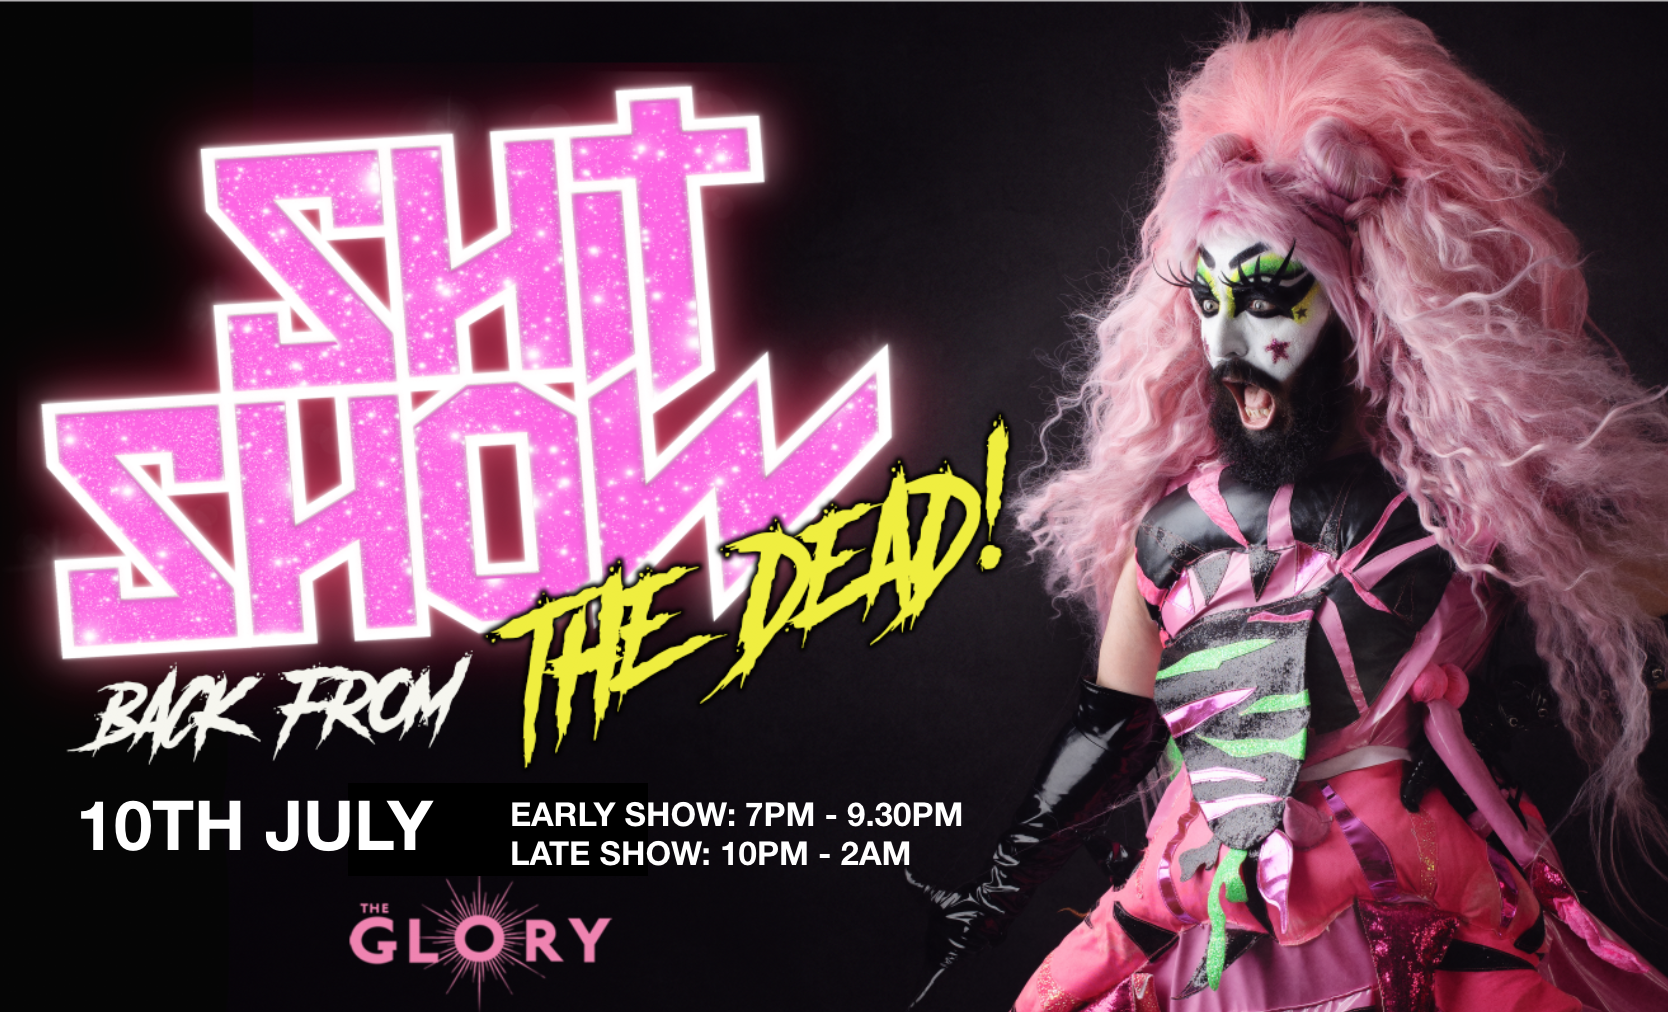 Shit Show: Back From The Dead! Early & Late Shows